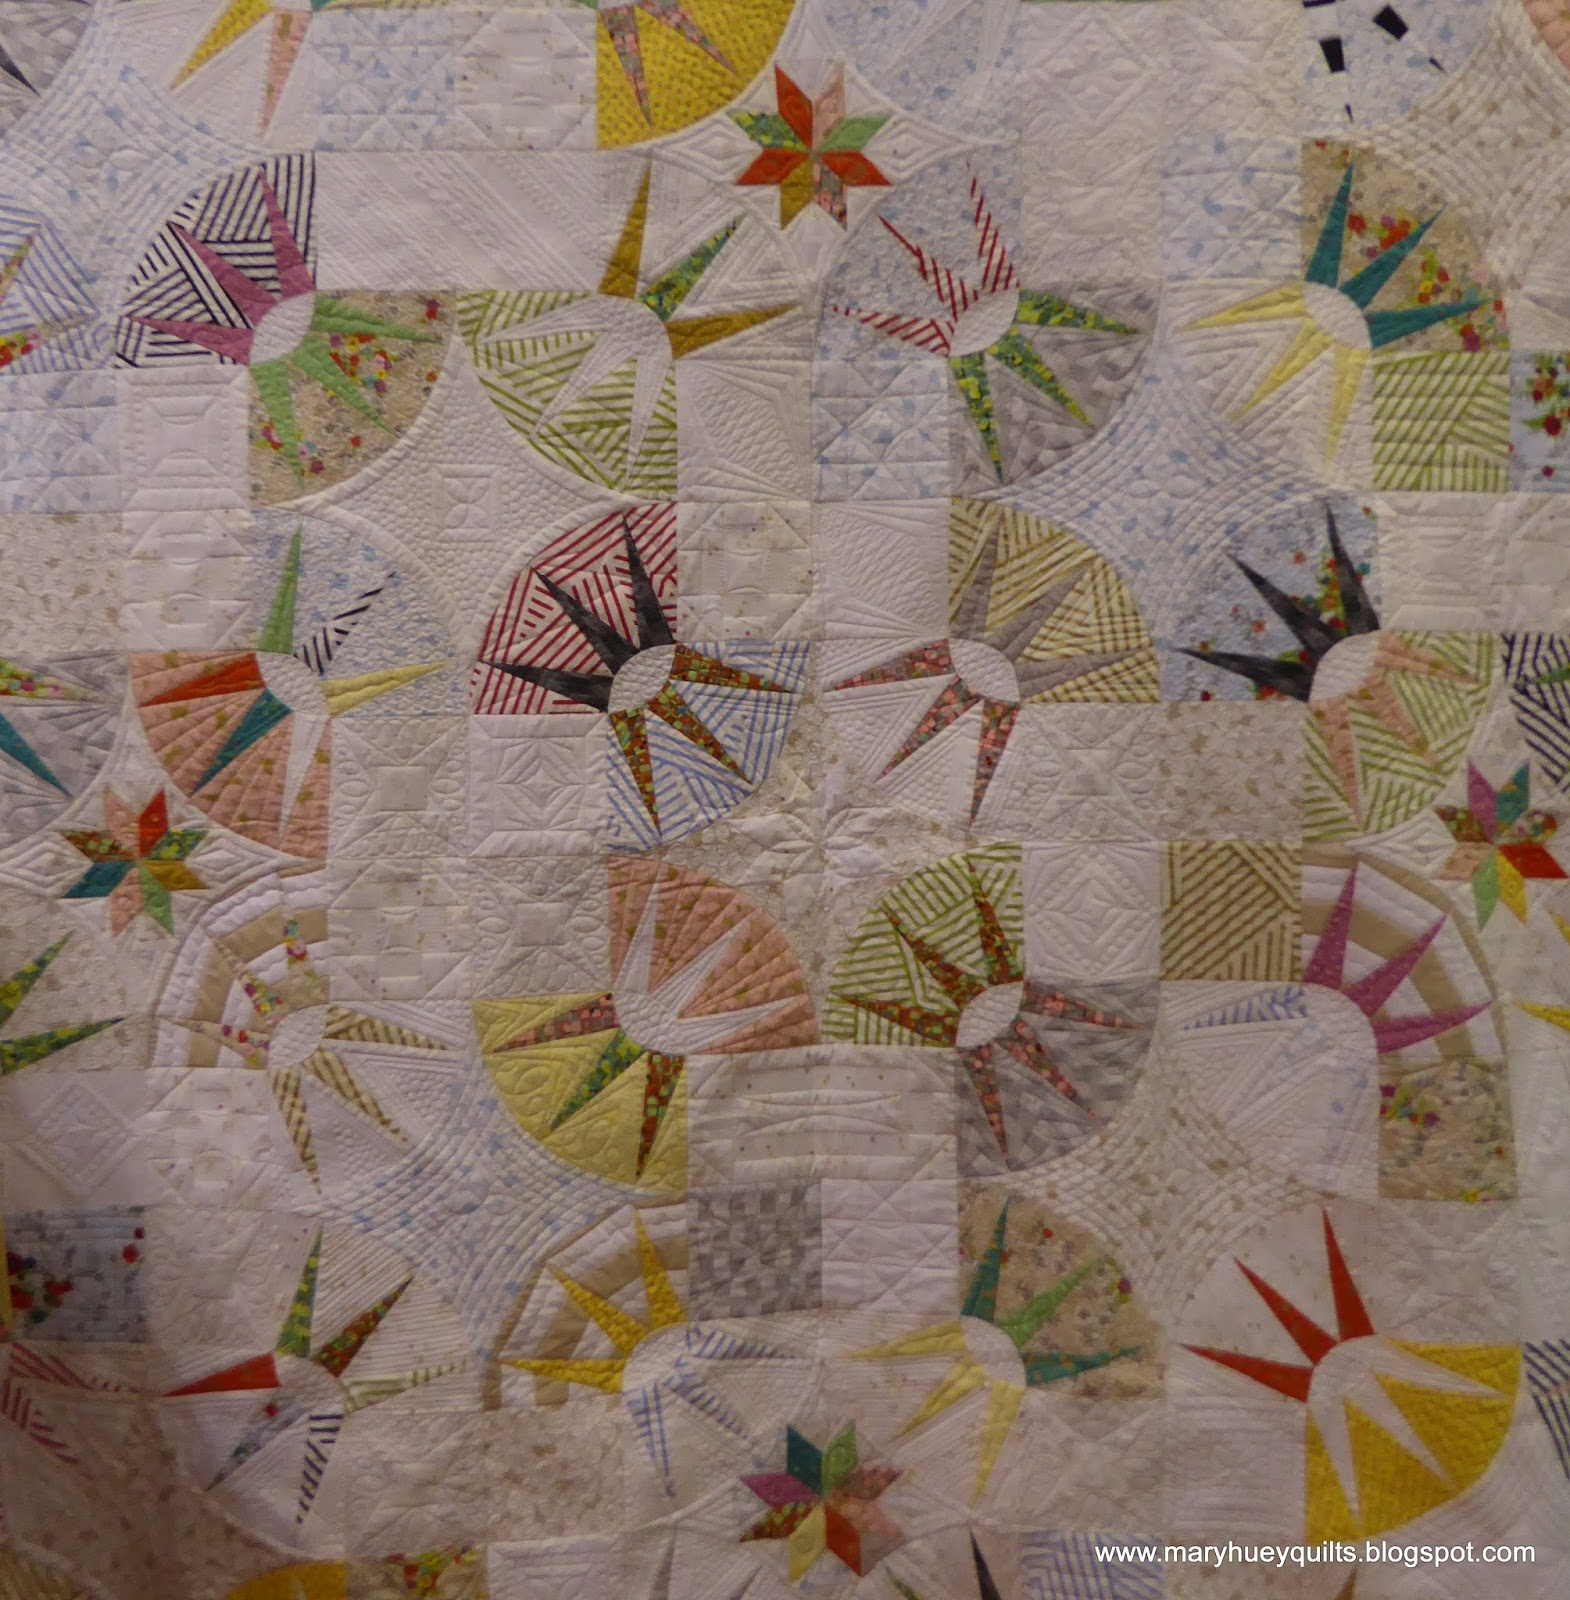 Quilting through Rose-colored Trifocals!: A Visit to the MQX Quilt ... : mqx quilt show - Adamdwight.com